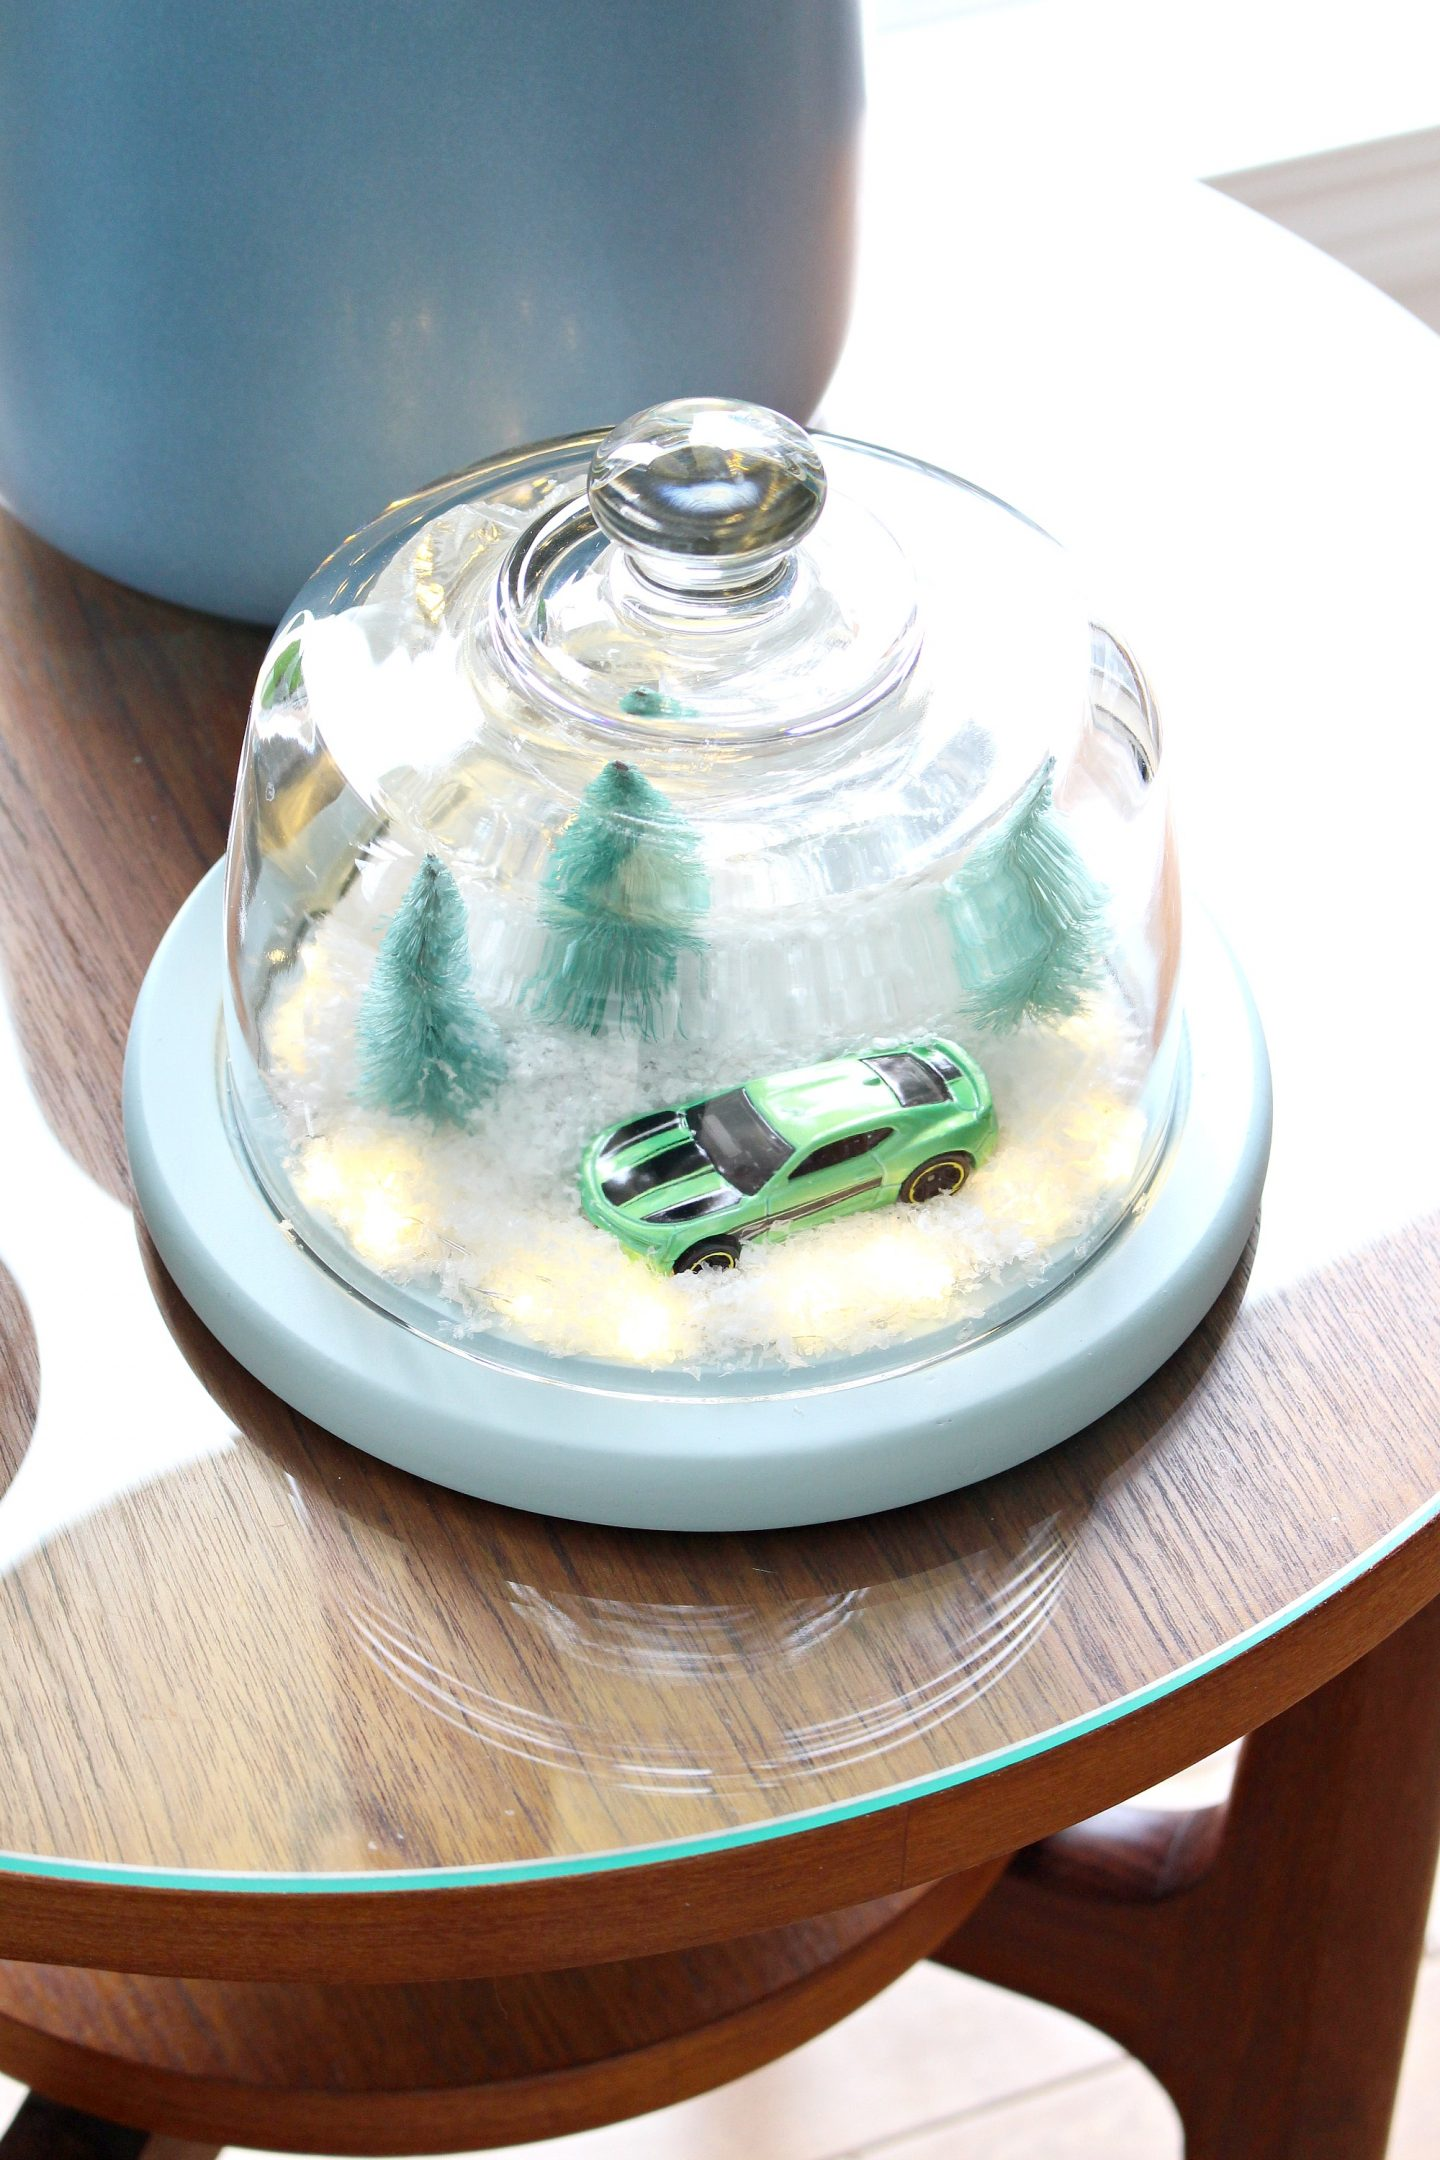 DIY Winter Diorama | aka The Camaro Cloche. Make this easy winter decor using a thrifted cheese cloche. A very Camaro christmas haha! #diy #holidaydecor